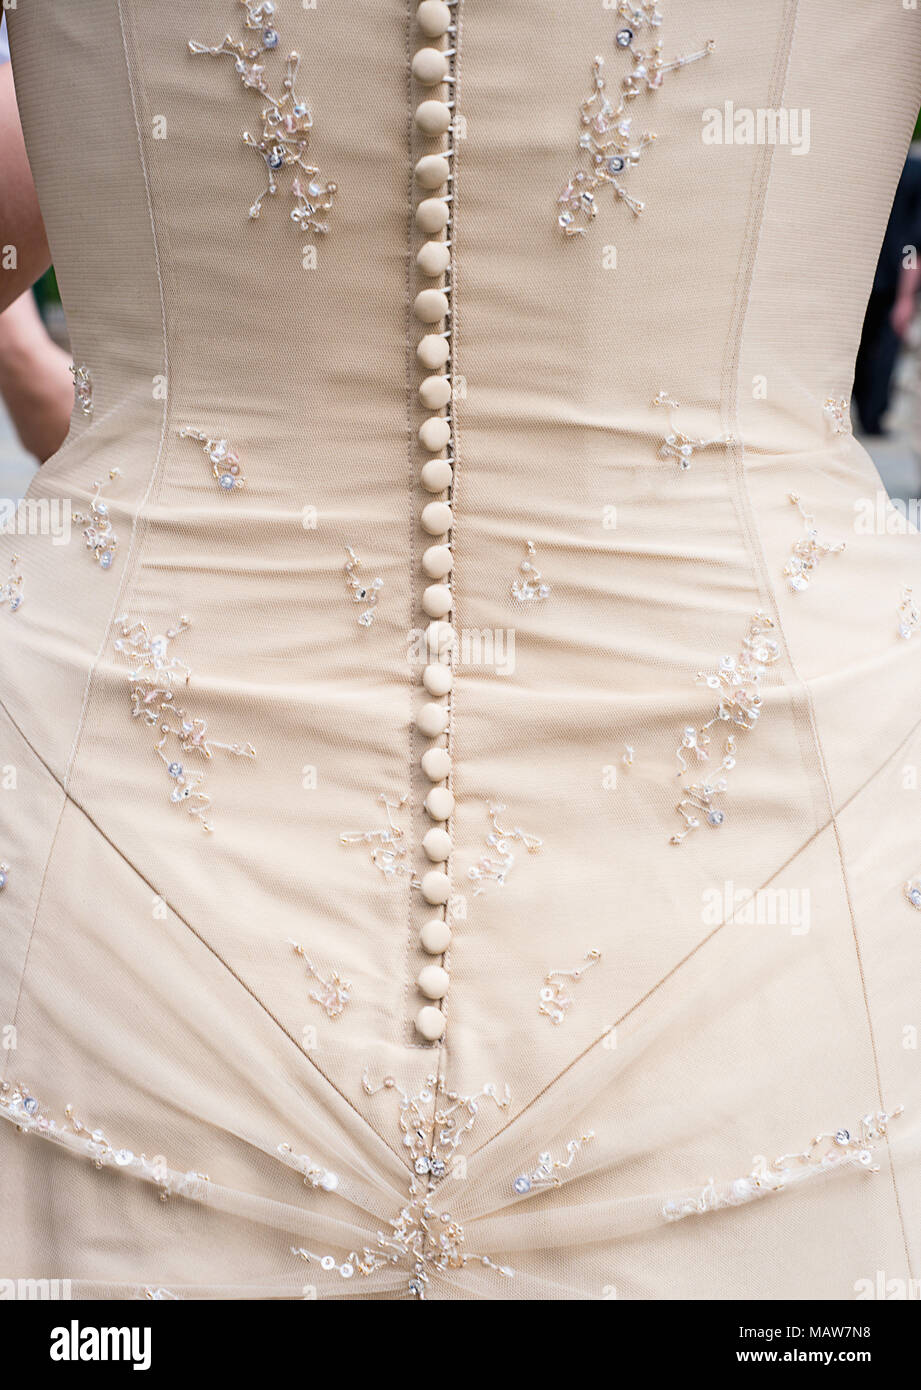 The buttons on the bodice of a wedding dress. - Stock Image